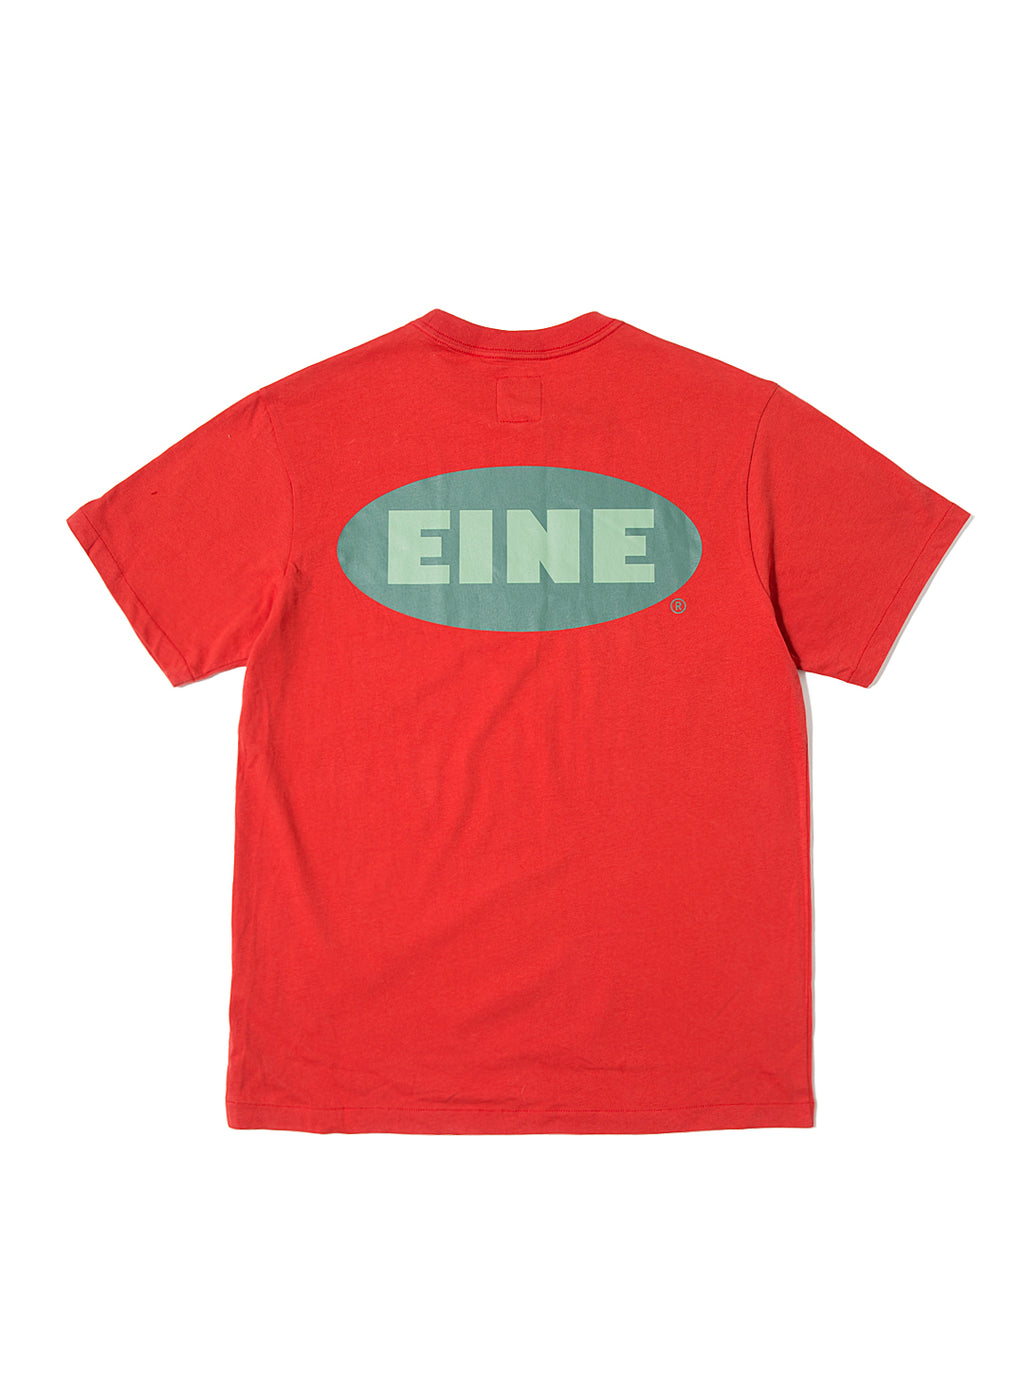 EINE Stock Logo S/S T-Shirt - Red Sample